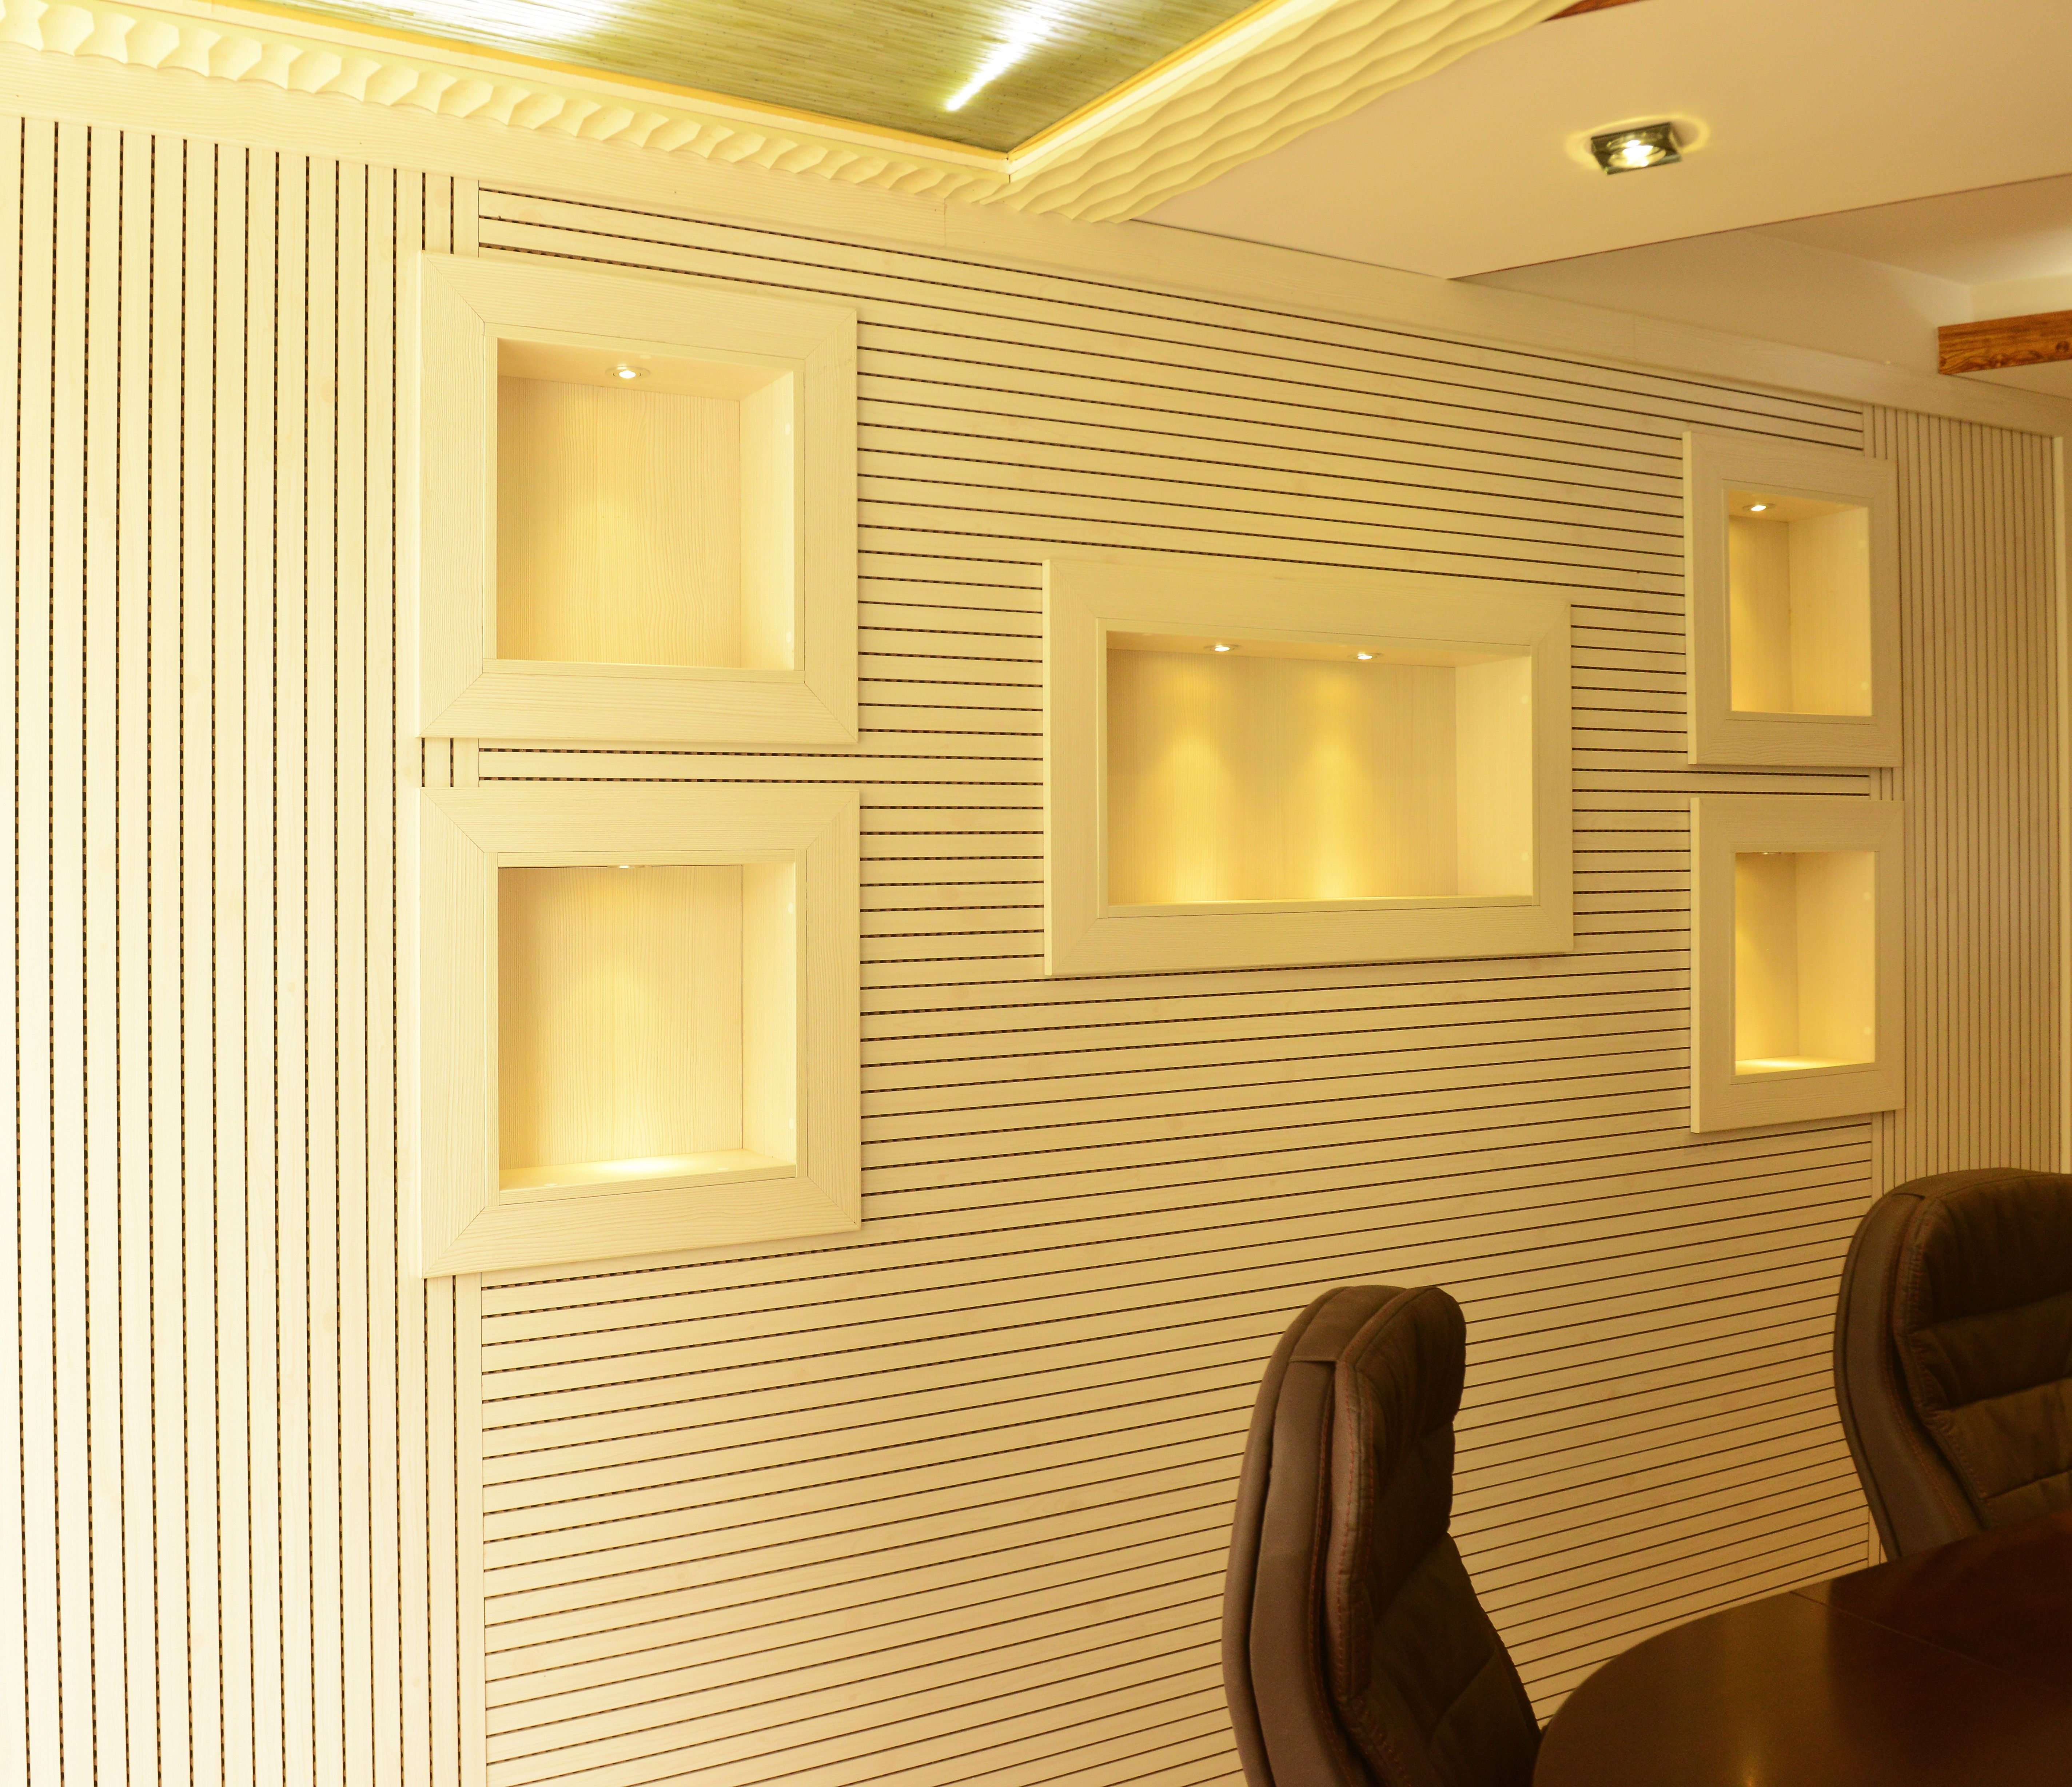 Acoustic Wall Panel made according to acoustical theory, excellent ...